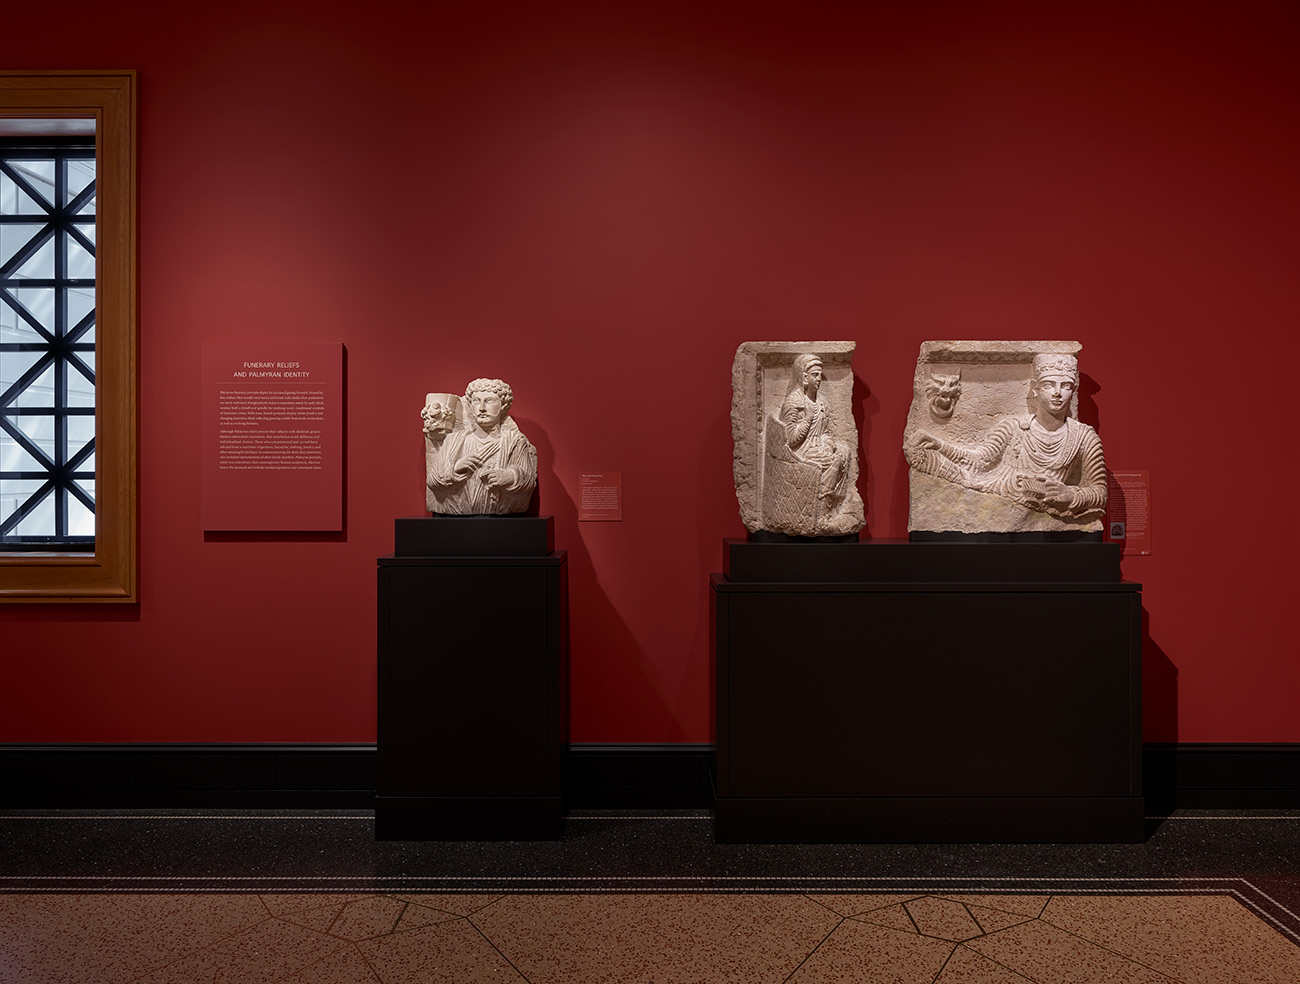 Three antique limestone sculptures sit on plinths, spotlit against a vibrant red wall